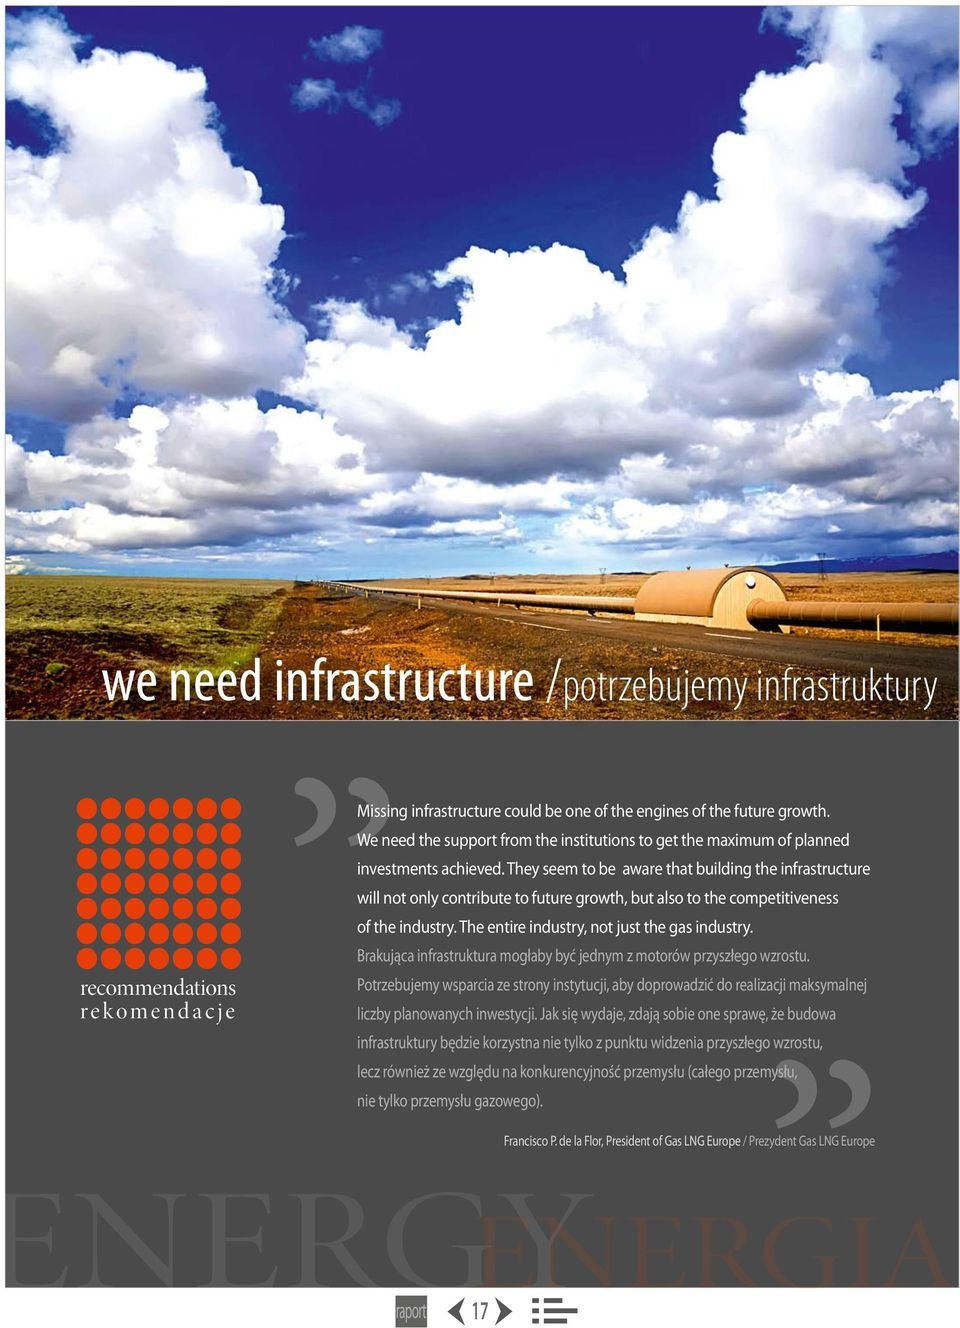 They seem to be aware that building the infrastructure will not only contribute to future growth, but also to the competitiveness of the industry. The entire industry, not just the gas industry.